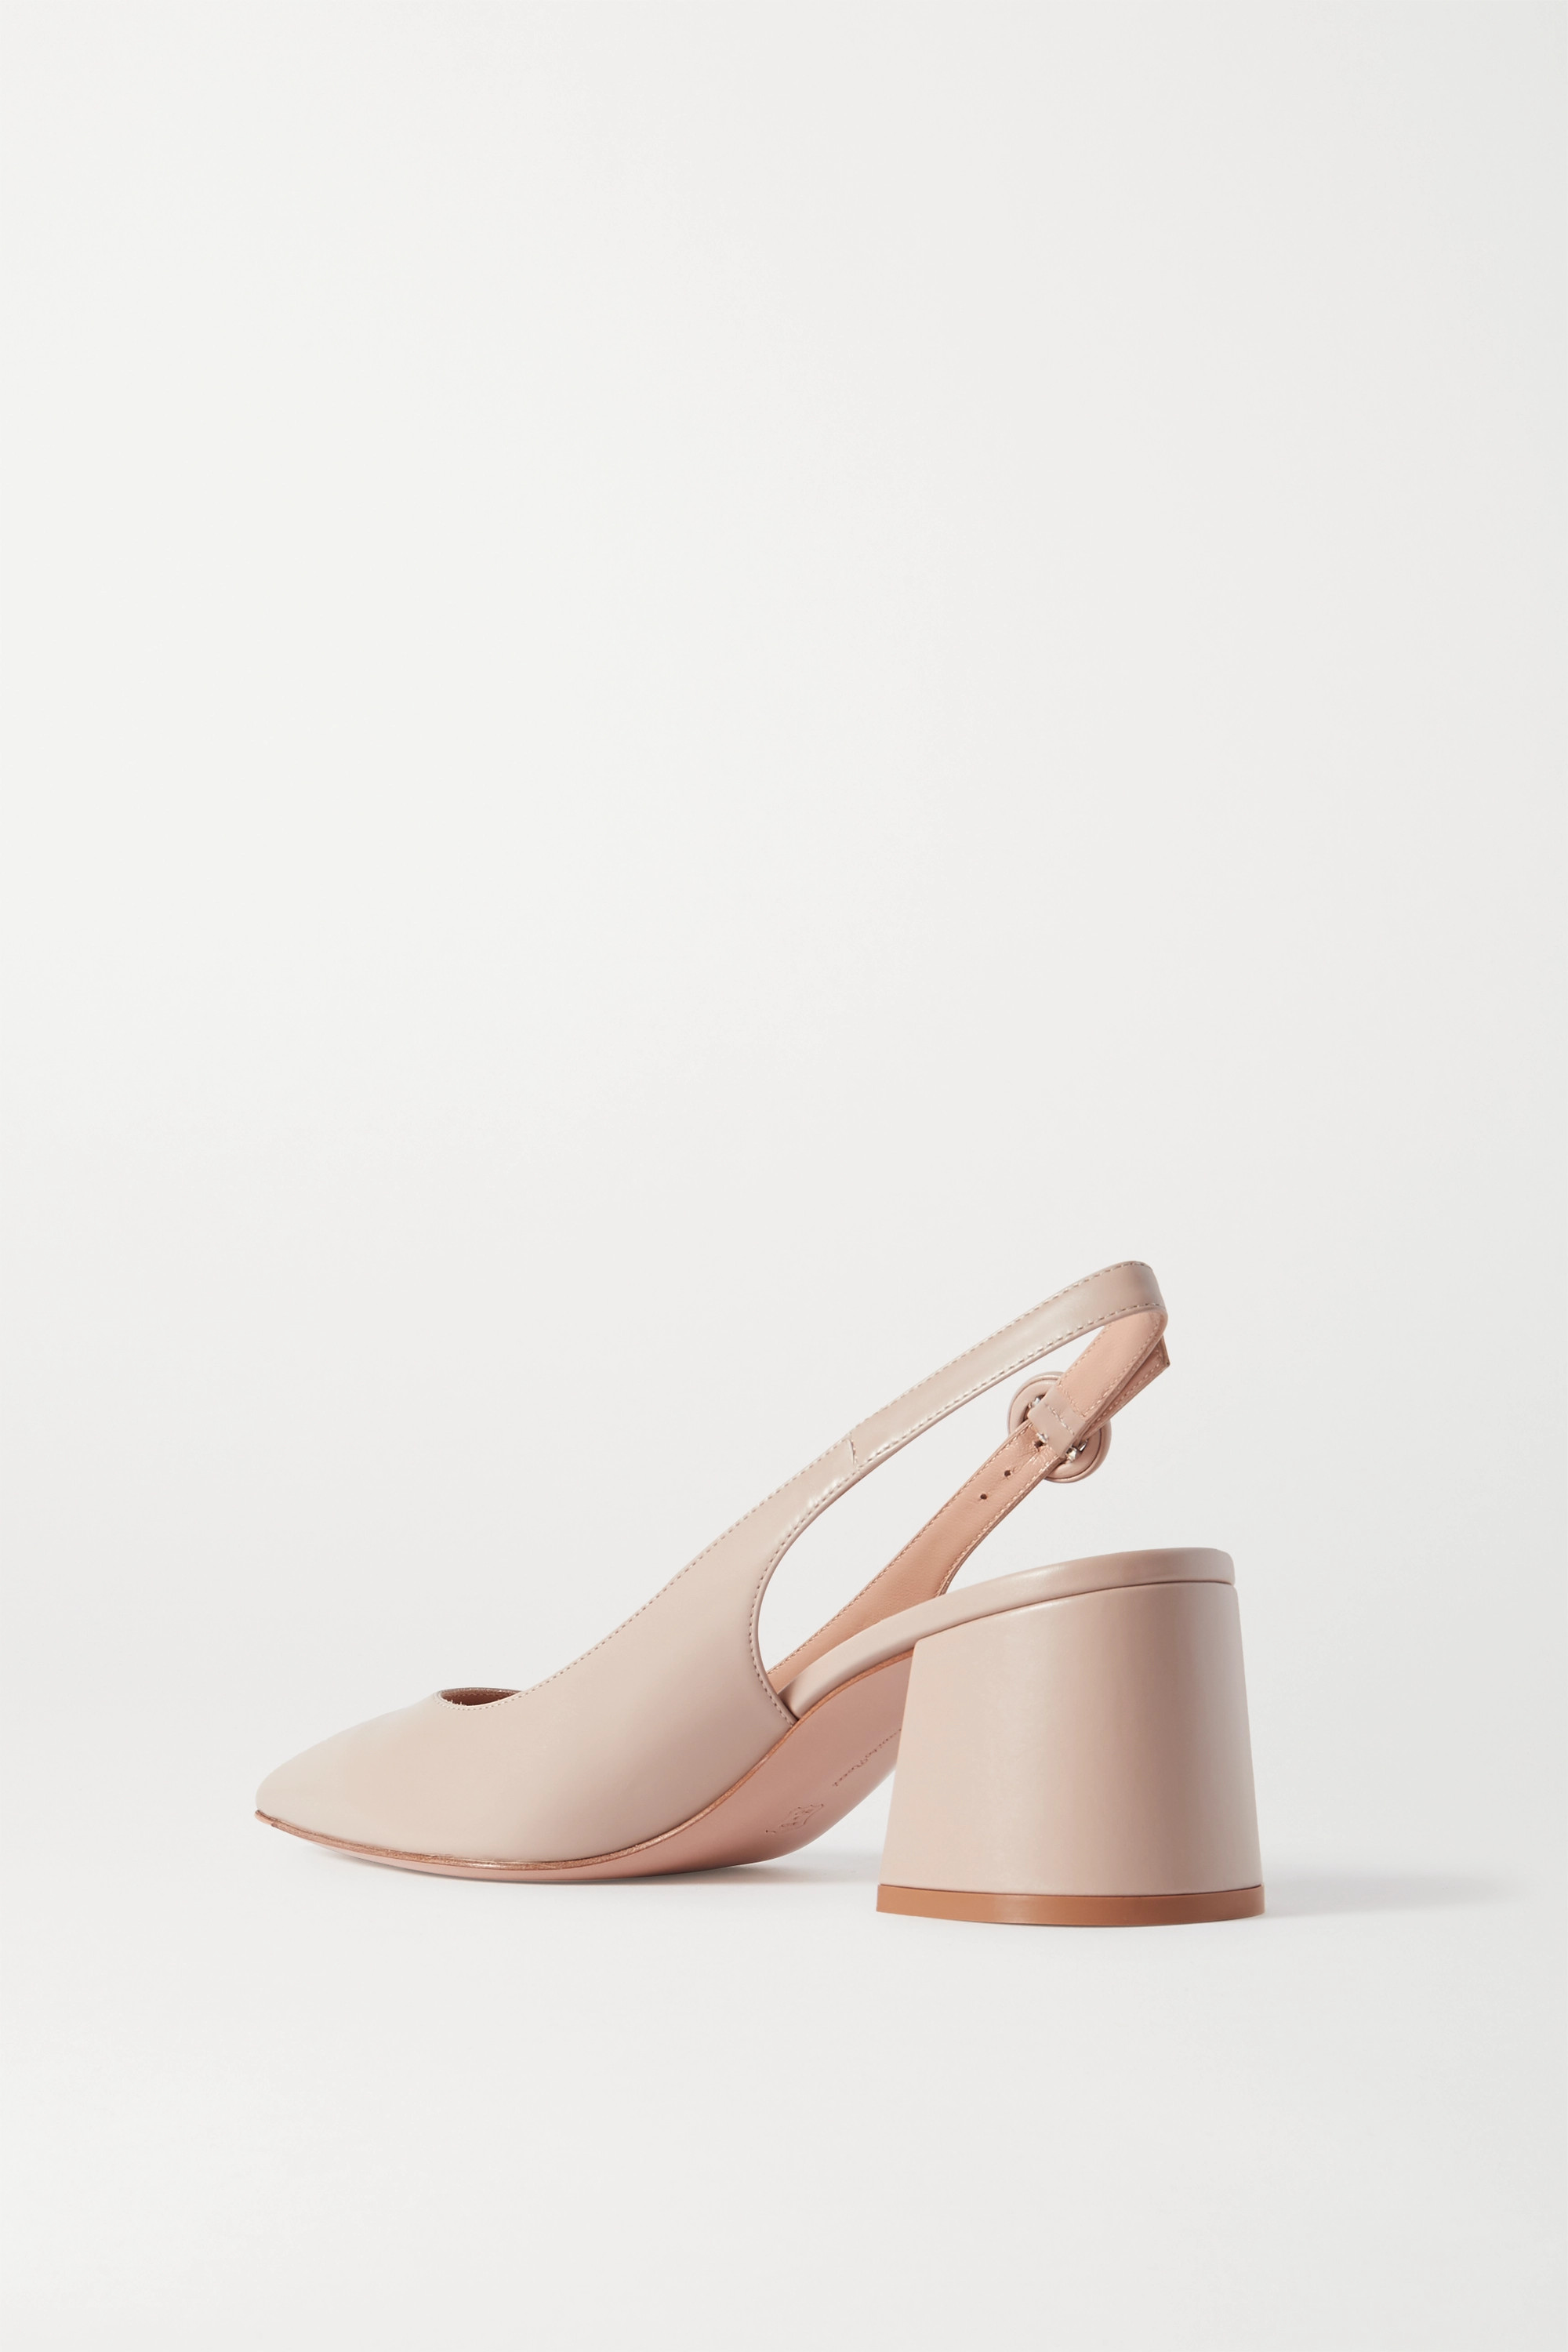 Gianvito Rossi Agata 60 leather slingback pumps